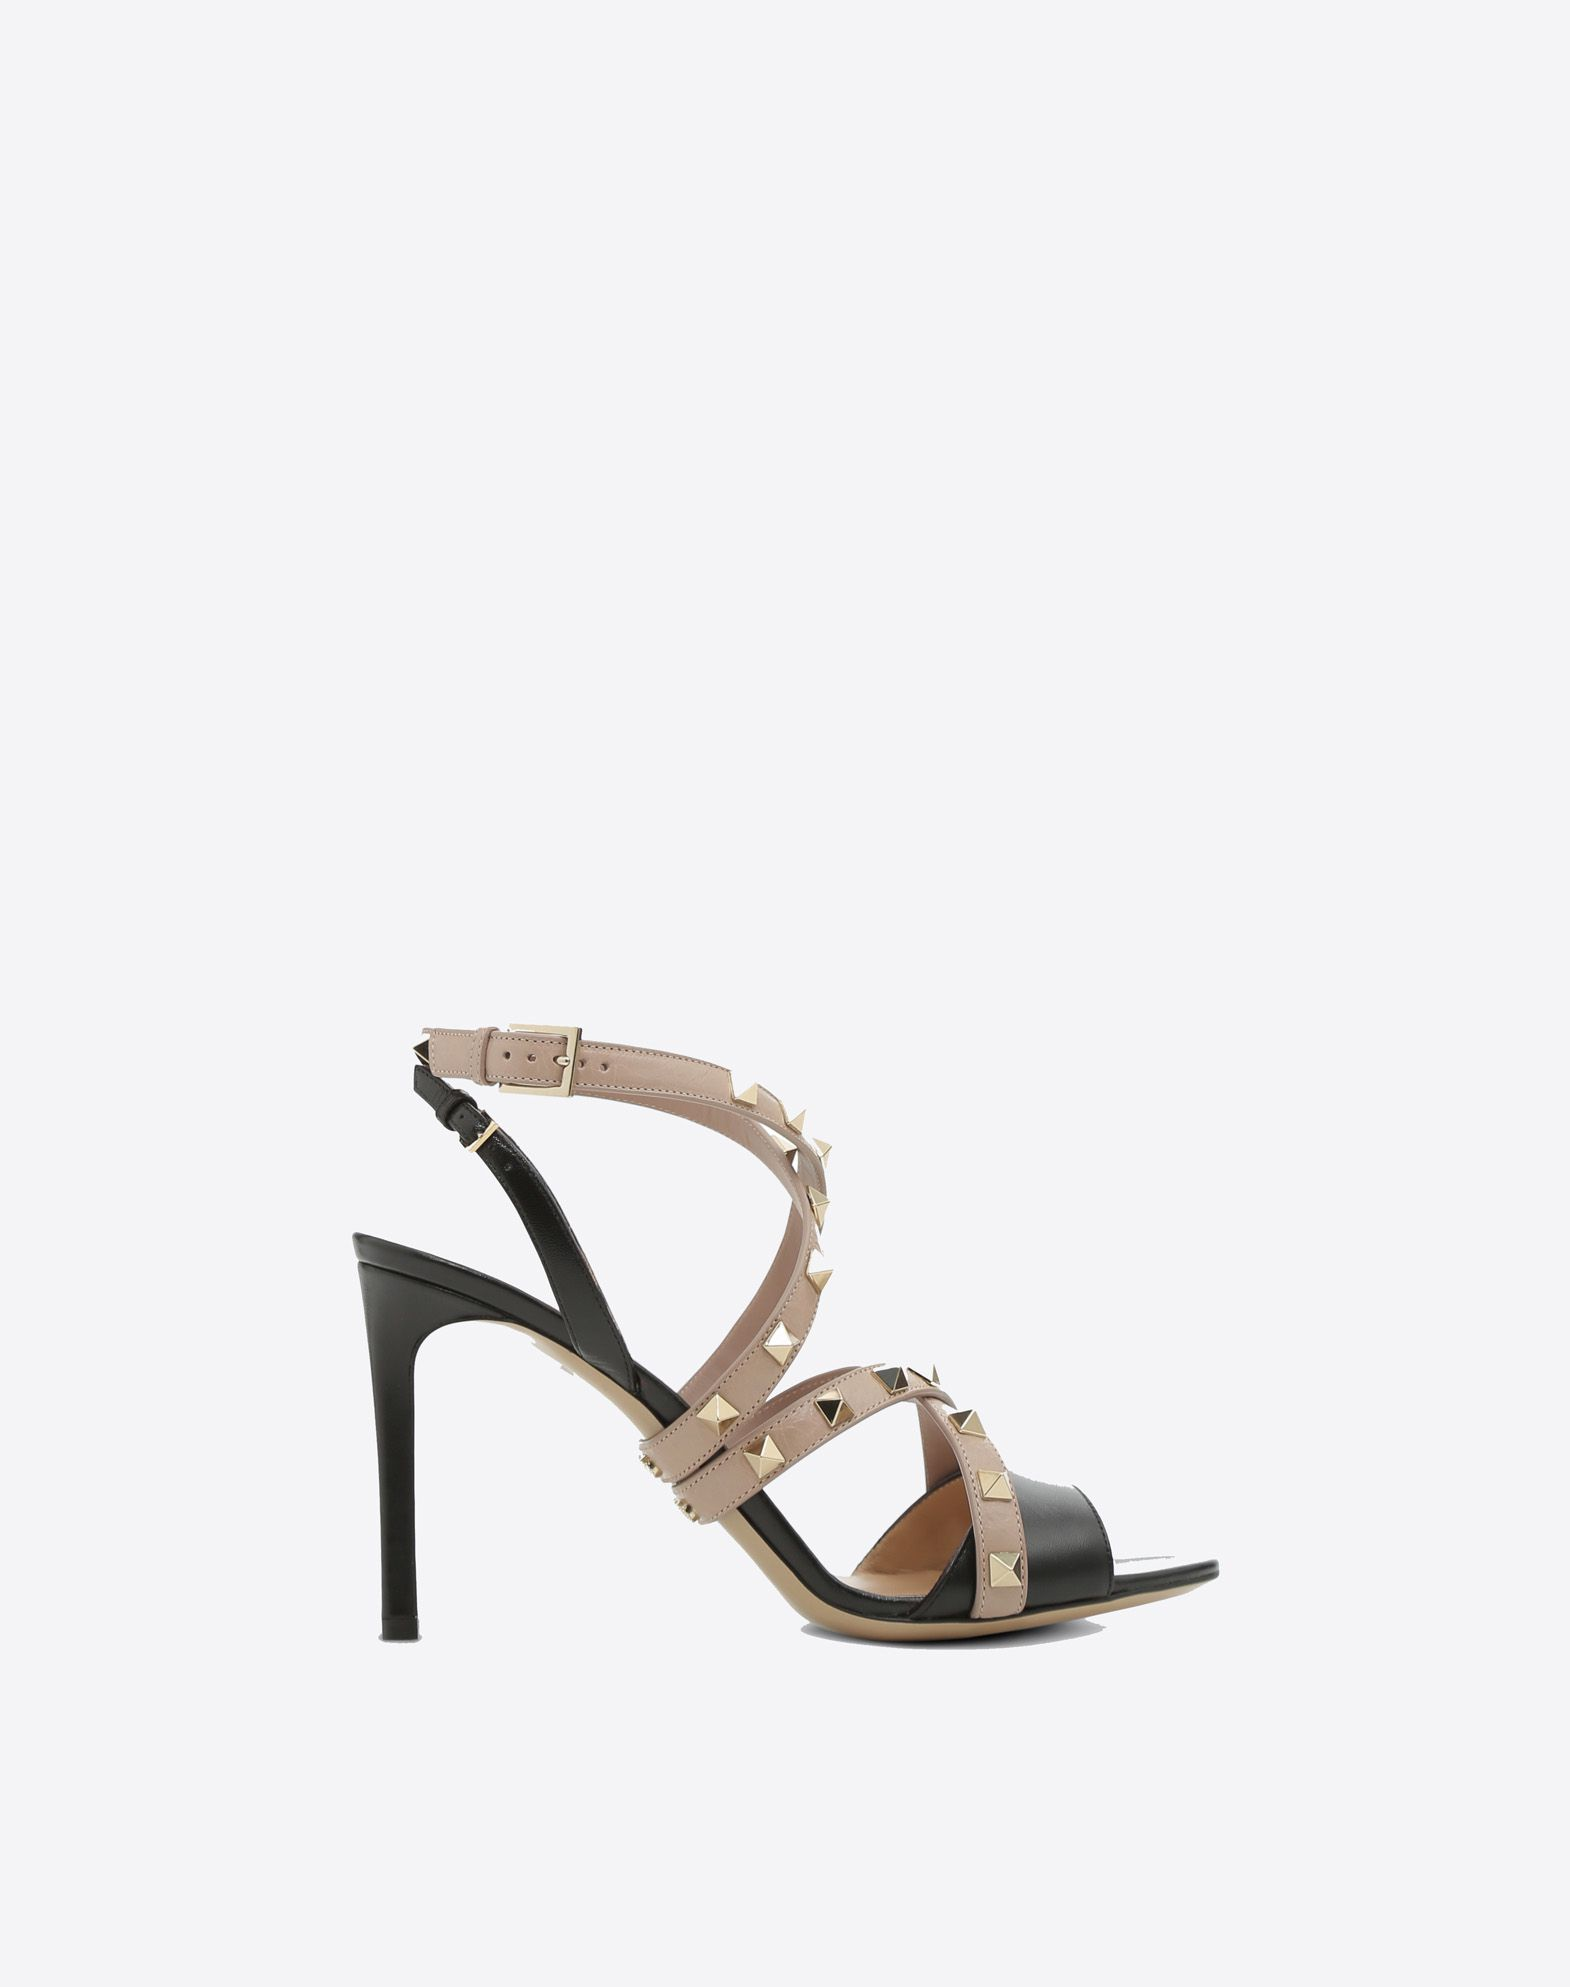 free shipping eastbay Valentino Valentino Garavani Studwrap sandals free shipping cheap price discount wiki fashionable sale online uNbs76yTUO